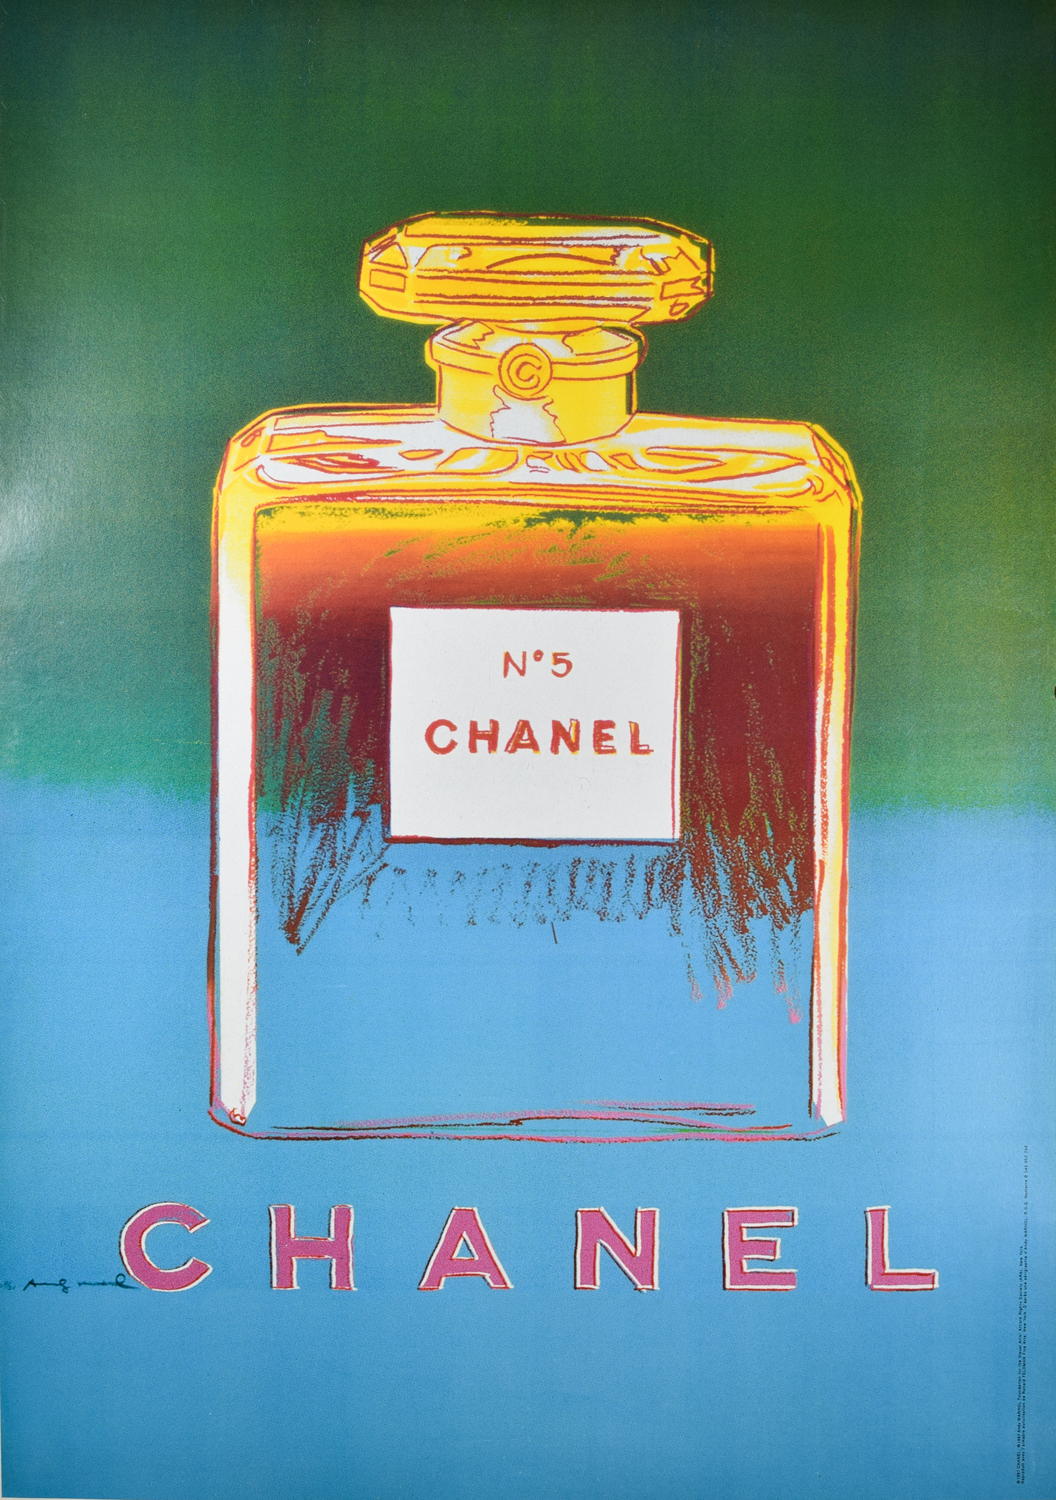 Chanel No 5 Blue Green Poster Designed By Andy Warhol Modernism